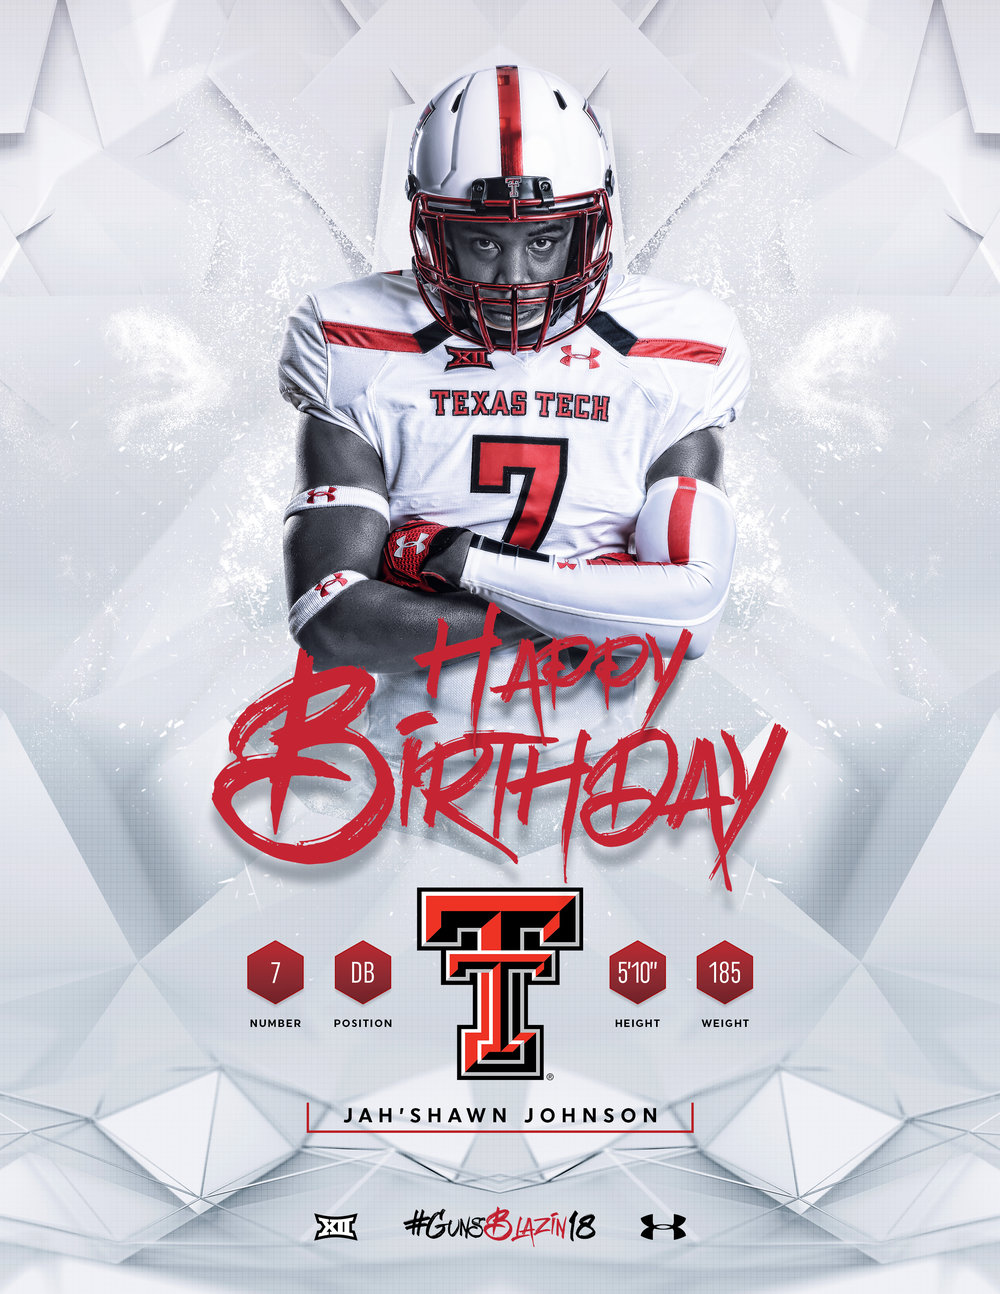 TTU Jah'Shawn Johnson Birthday Graphic